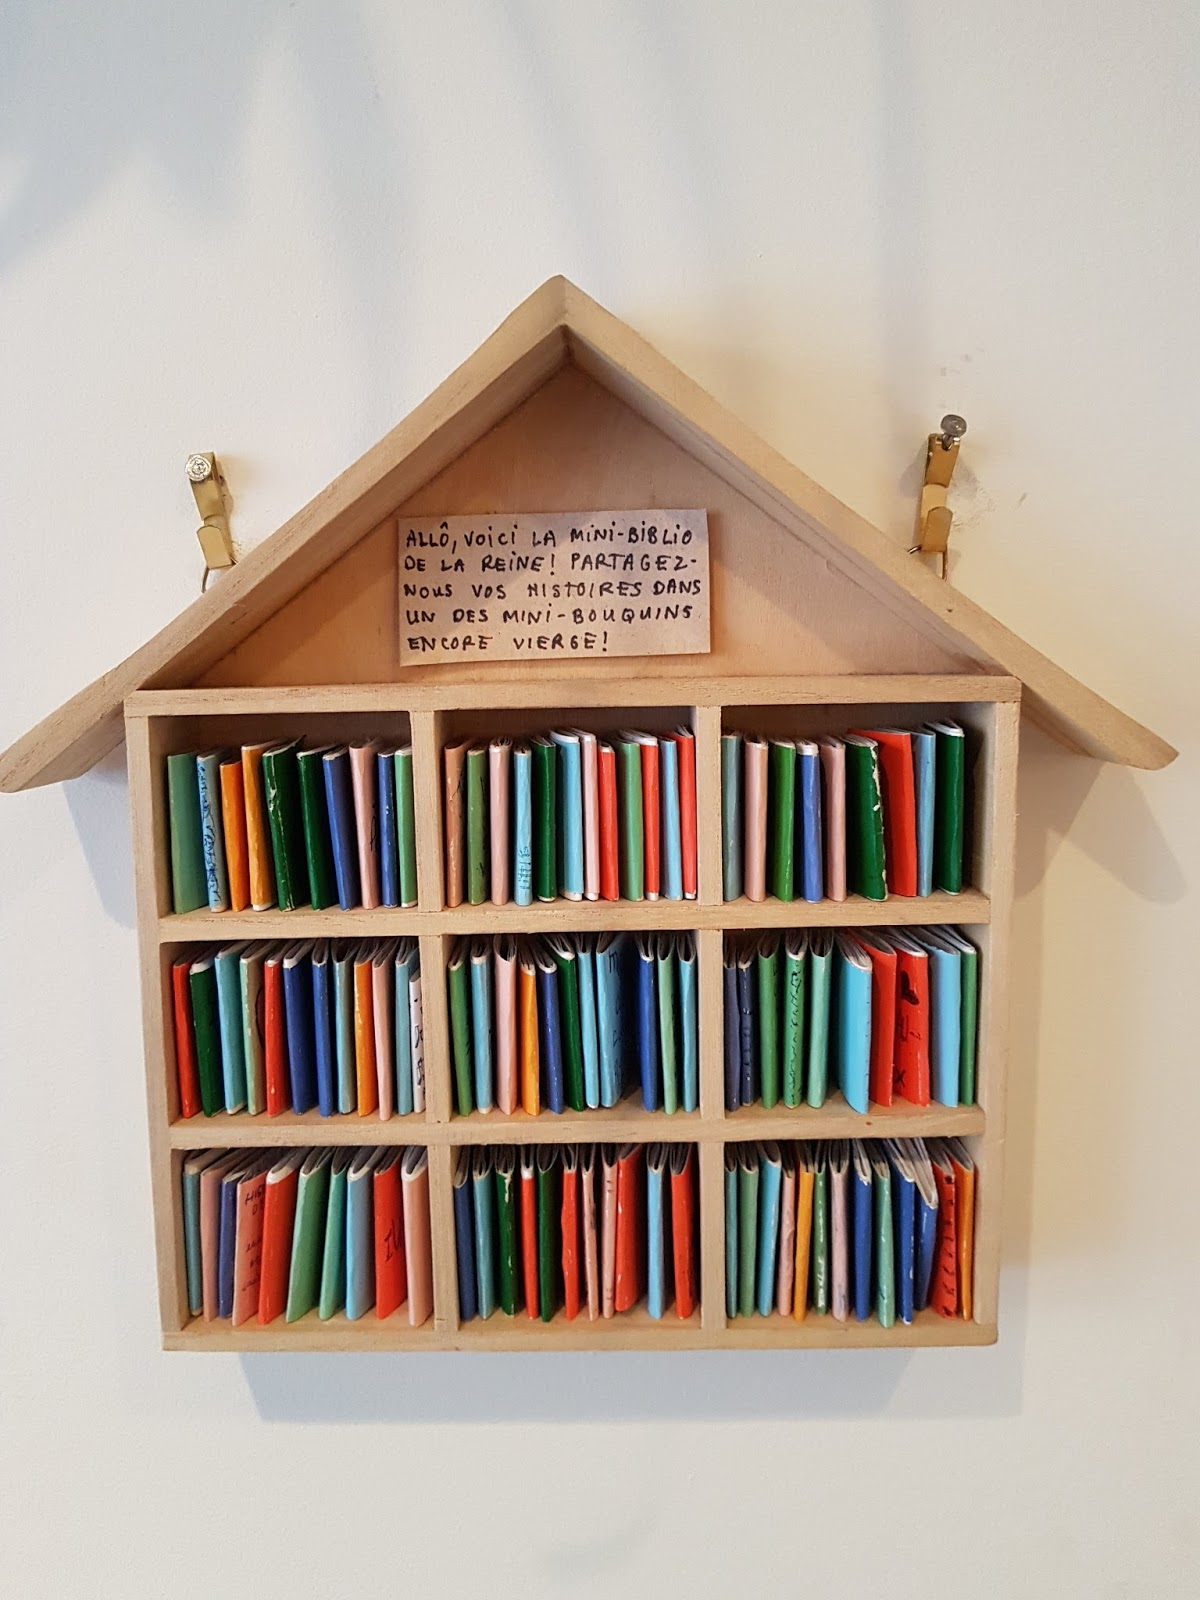 Mini bibliotheques / libraries